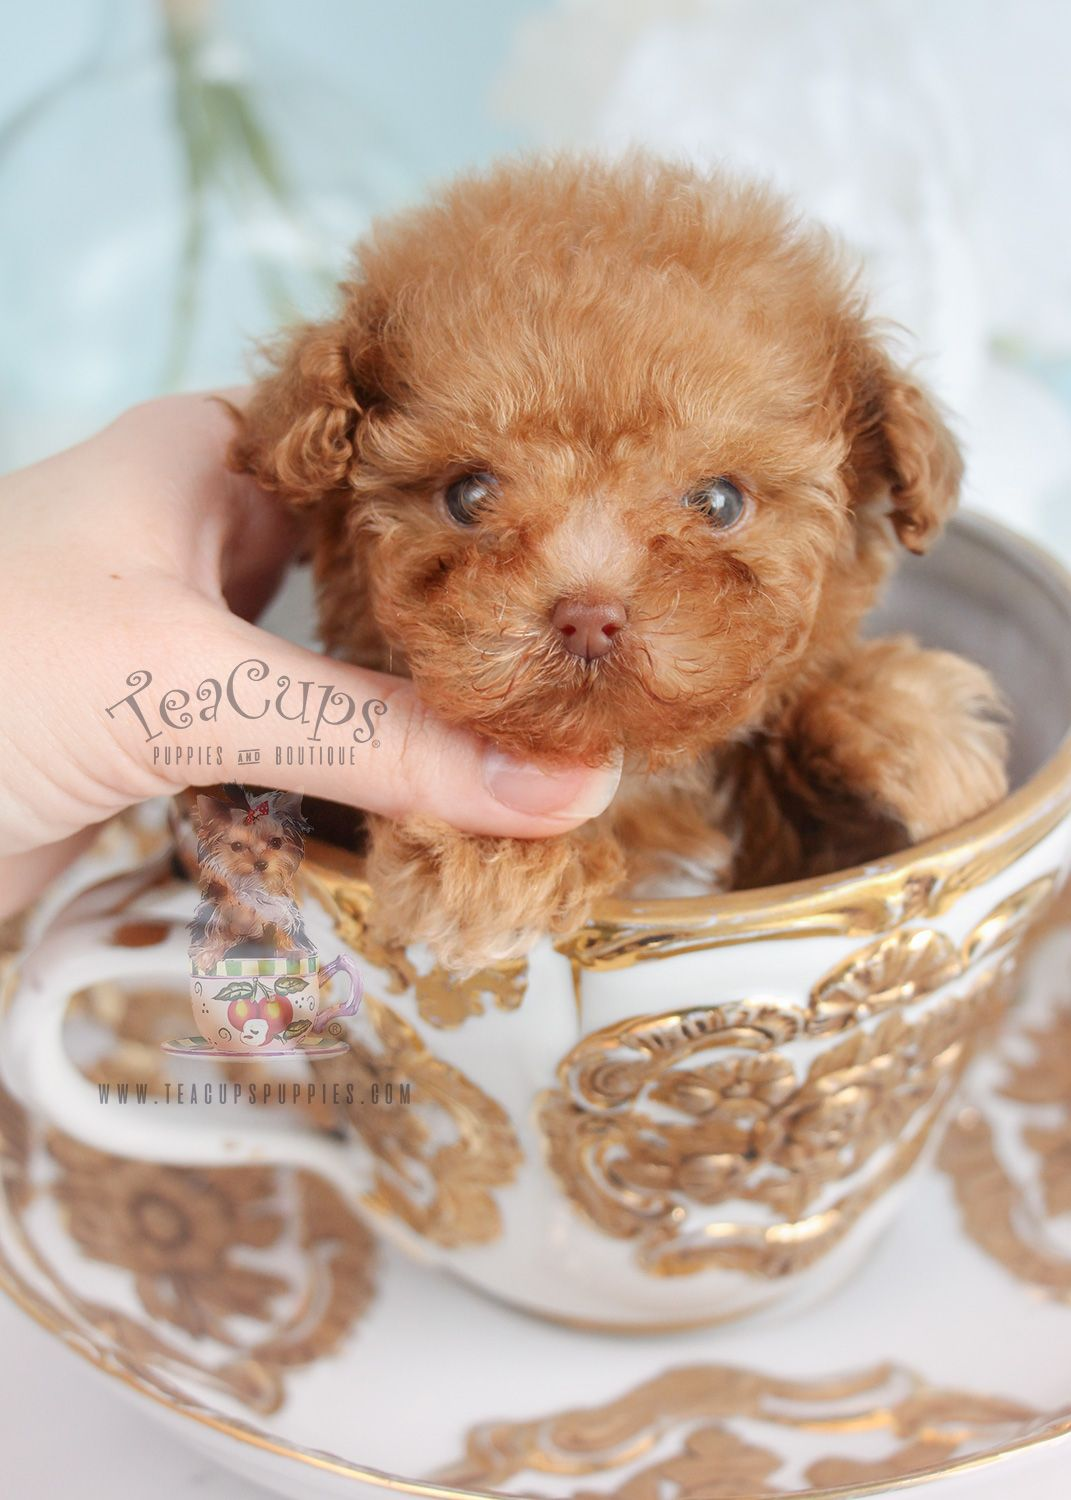 Gorgeous Teacup Poodle Puppy By Teacup Puppies Boutique